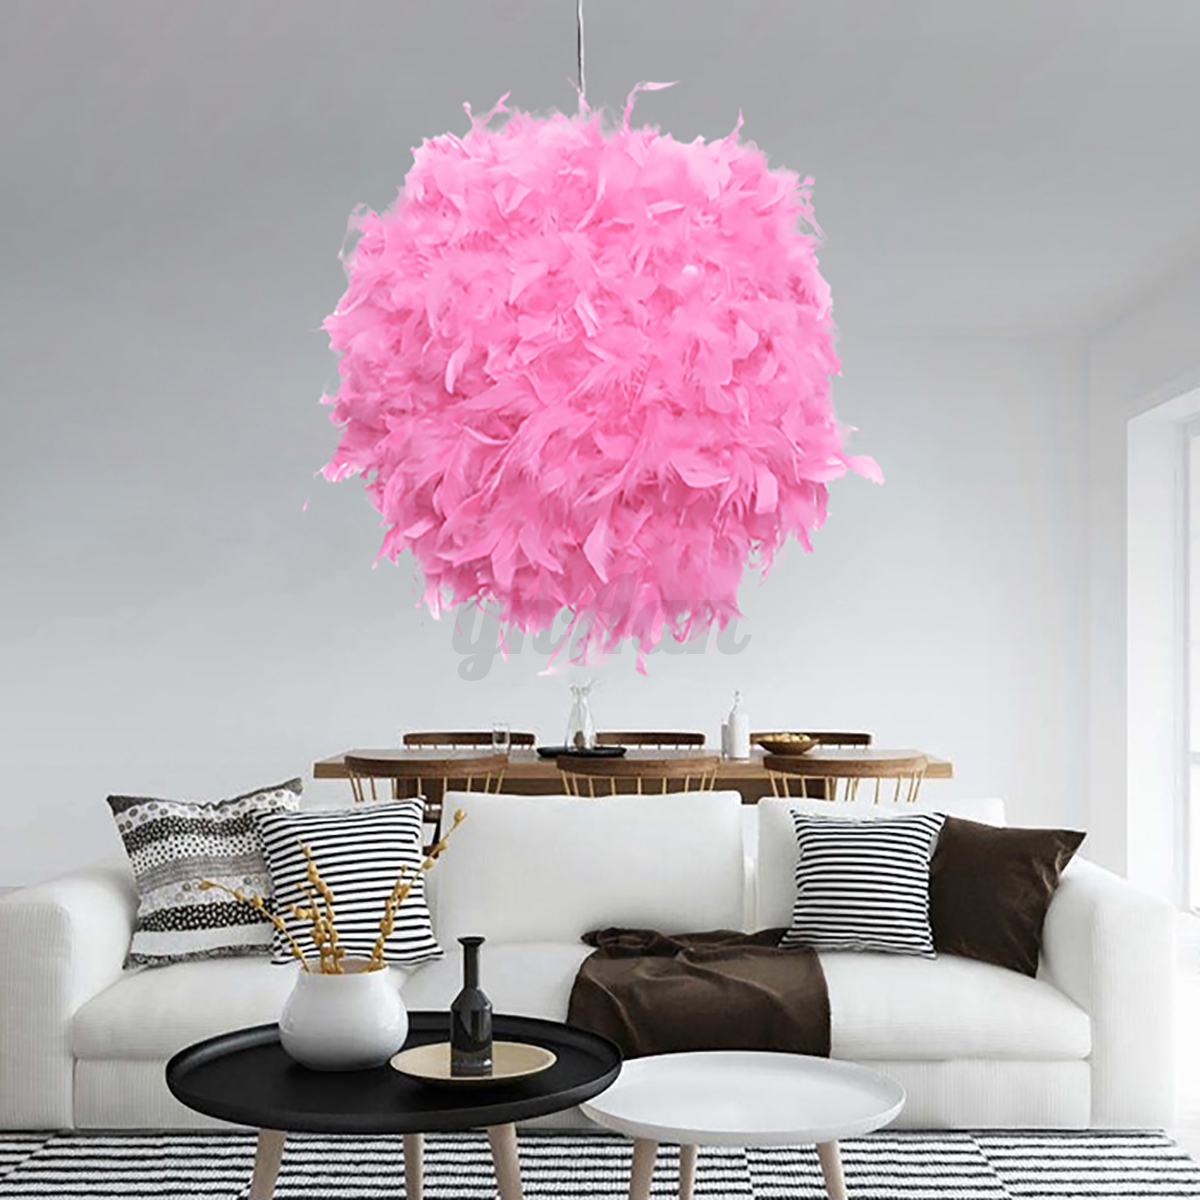 Ceiling Lamp Shades For Living Room: Modern Feather Ball Light Shade Ceiling Lighting Living